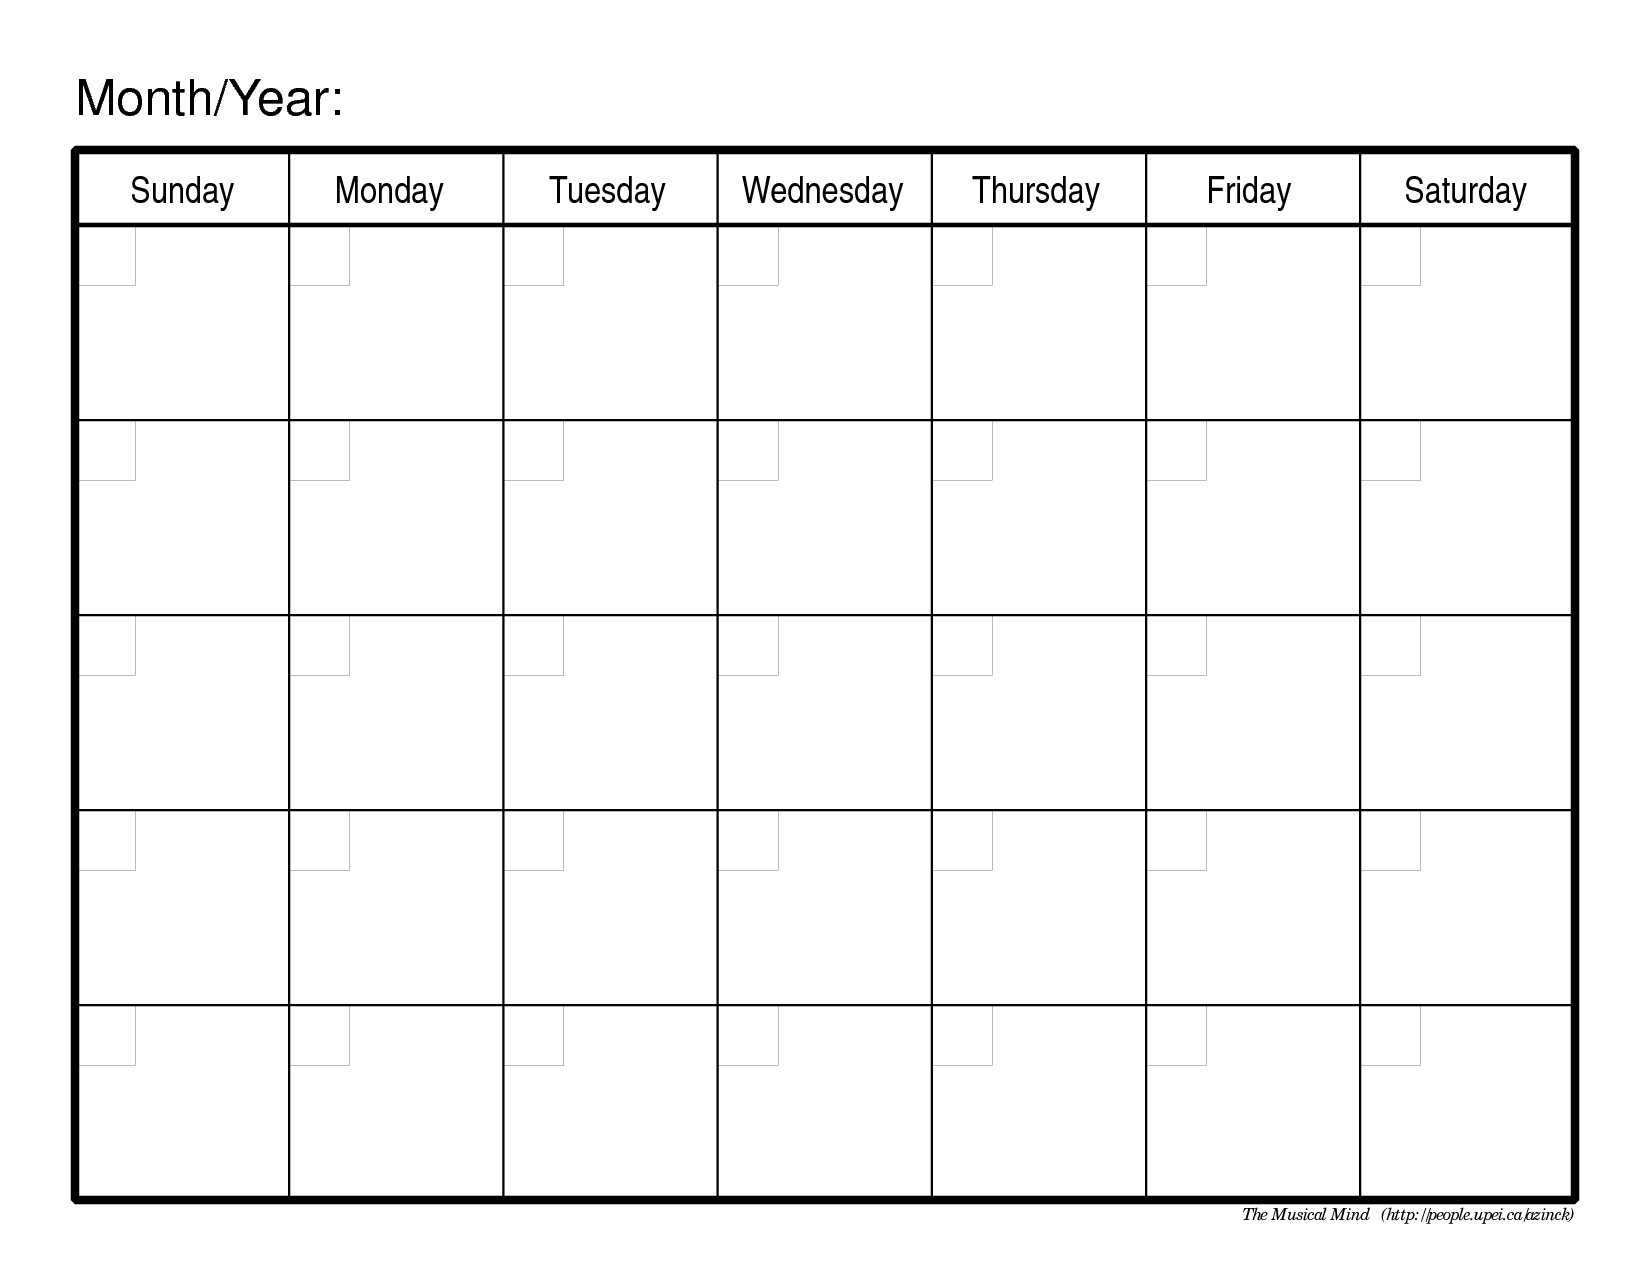 Calendar Templates Printable Free Fieldstation.co | Self-Monday To Friday Monthly Calendar Template